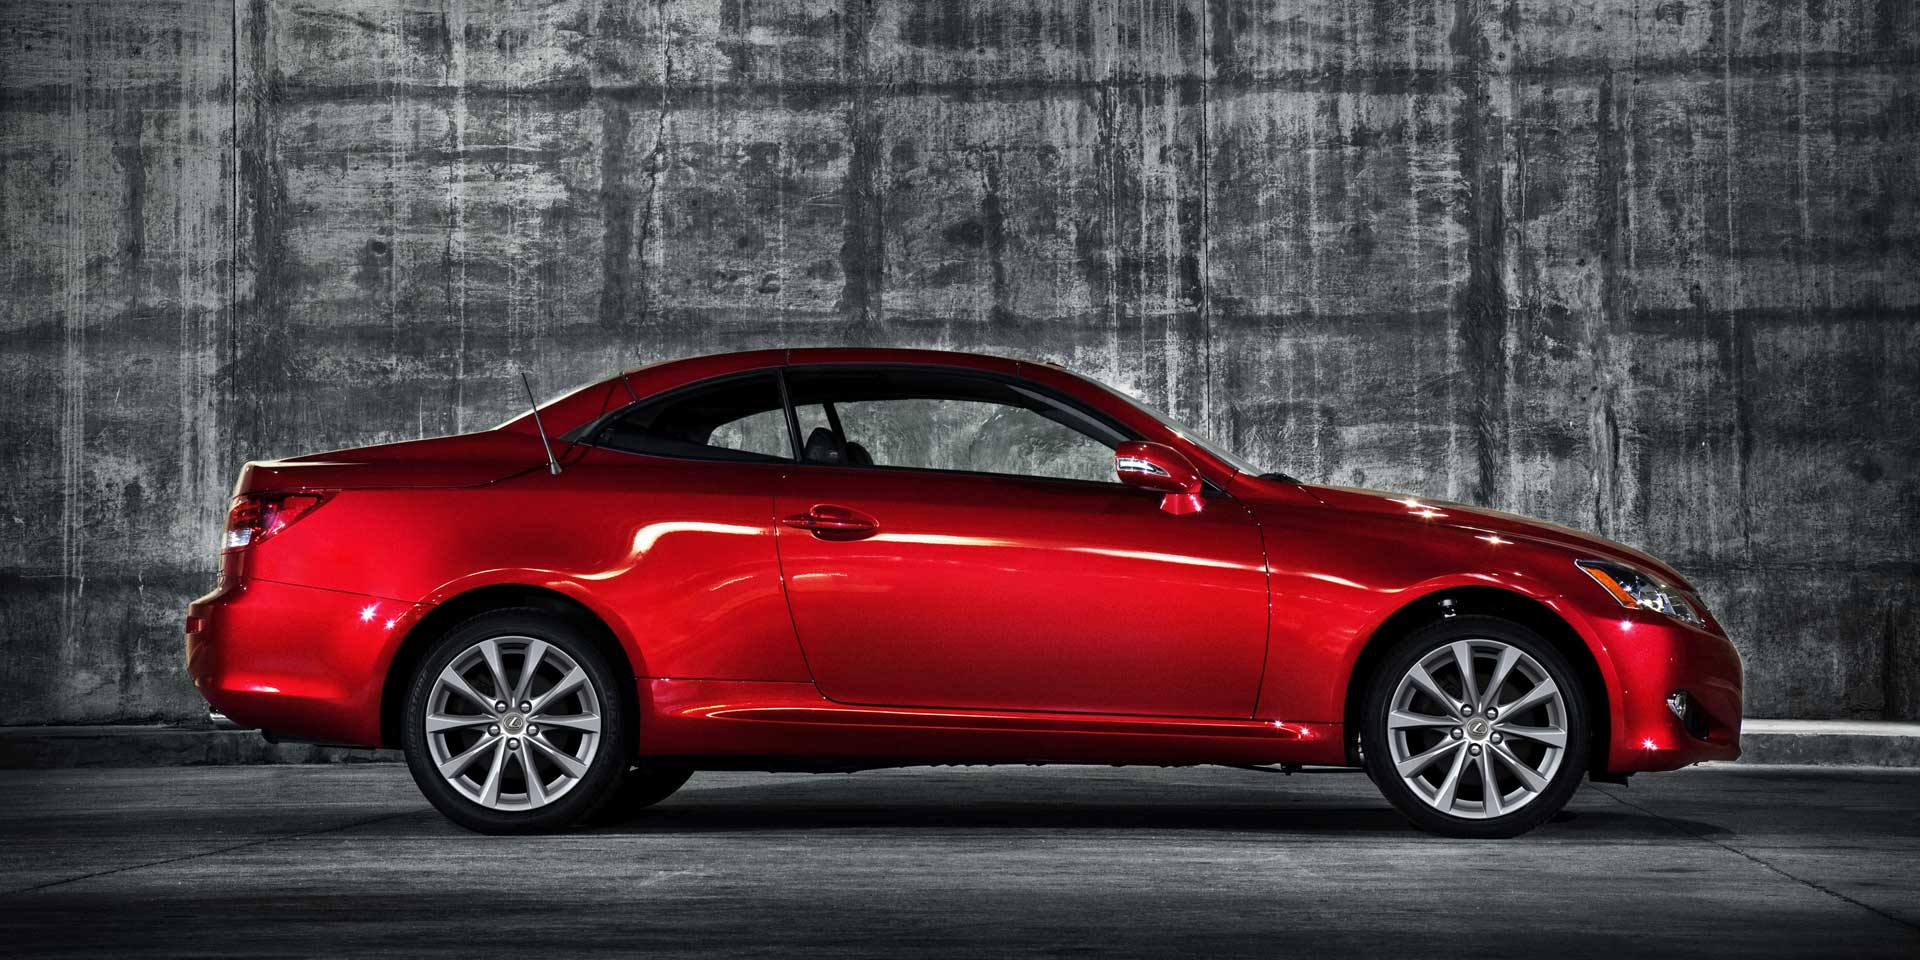 2015 LEXUS IS CONVERTIBLE: A Popular U201cfun In The Sunu201d Vehicle From Lexus Is  The 2015 IS 250 C, Which Comes Wrapped In A Head Turning Design That  Delivers ...